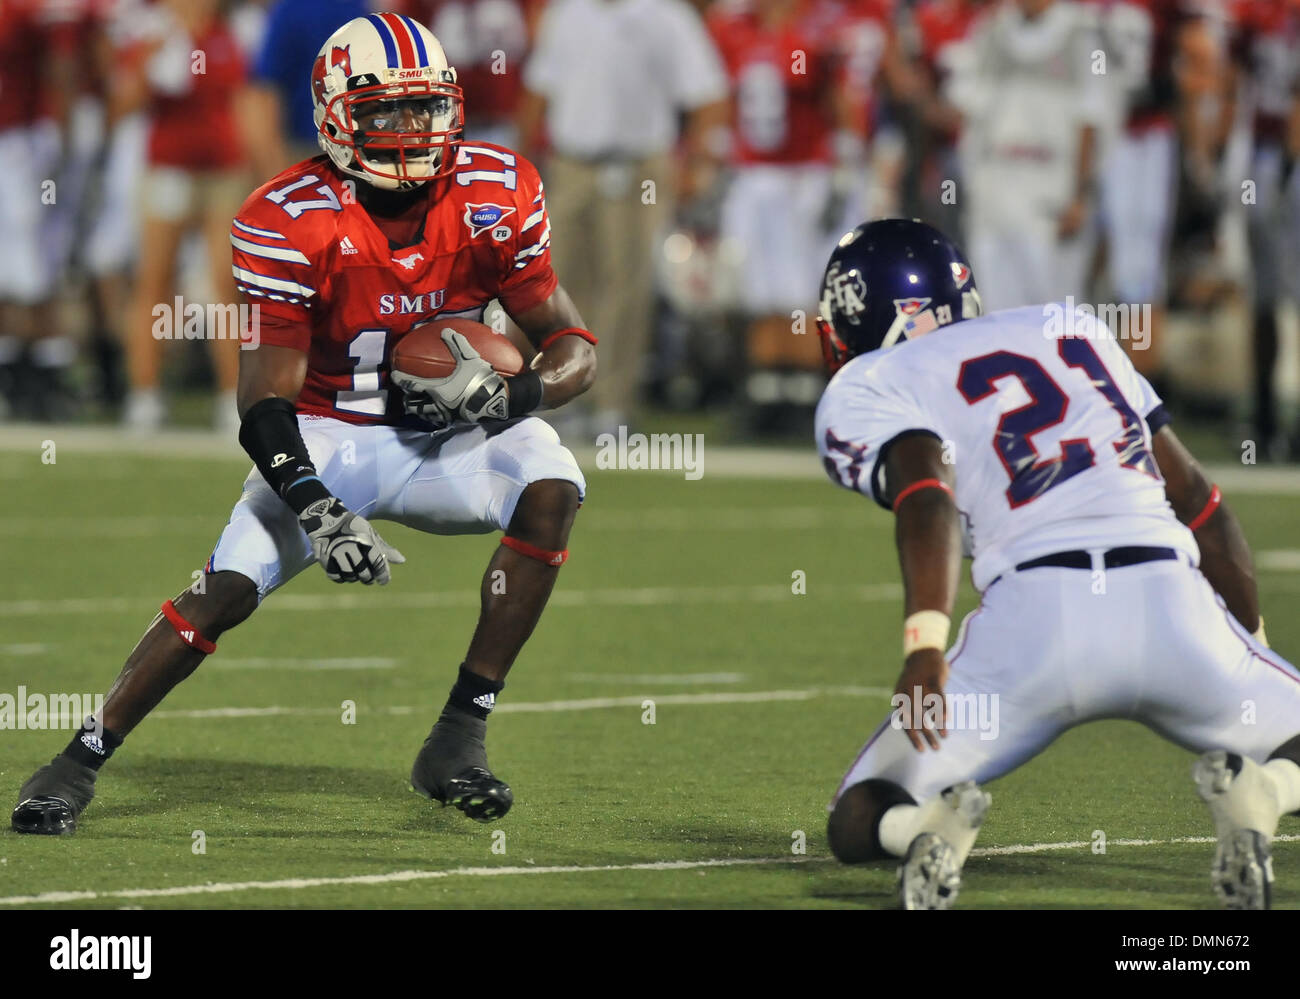 05 SEP 2009:  Stephen F Austin travels to Dallas to face the SMU Ponies in the season kickoff.  With a 4th quarter come back the Ponies win 31-23 over SFA.  SMU WR Emmanuel Sanders looks to side step DB Chad Haynes. (Credit Image: © Southcreek Global/ZUMApress.com) - Stock Image